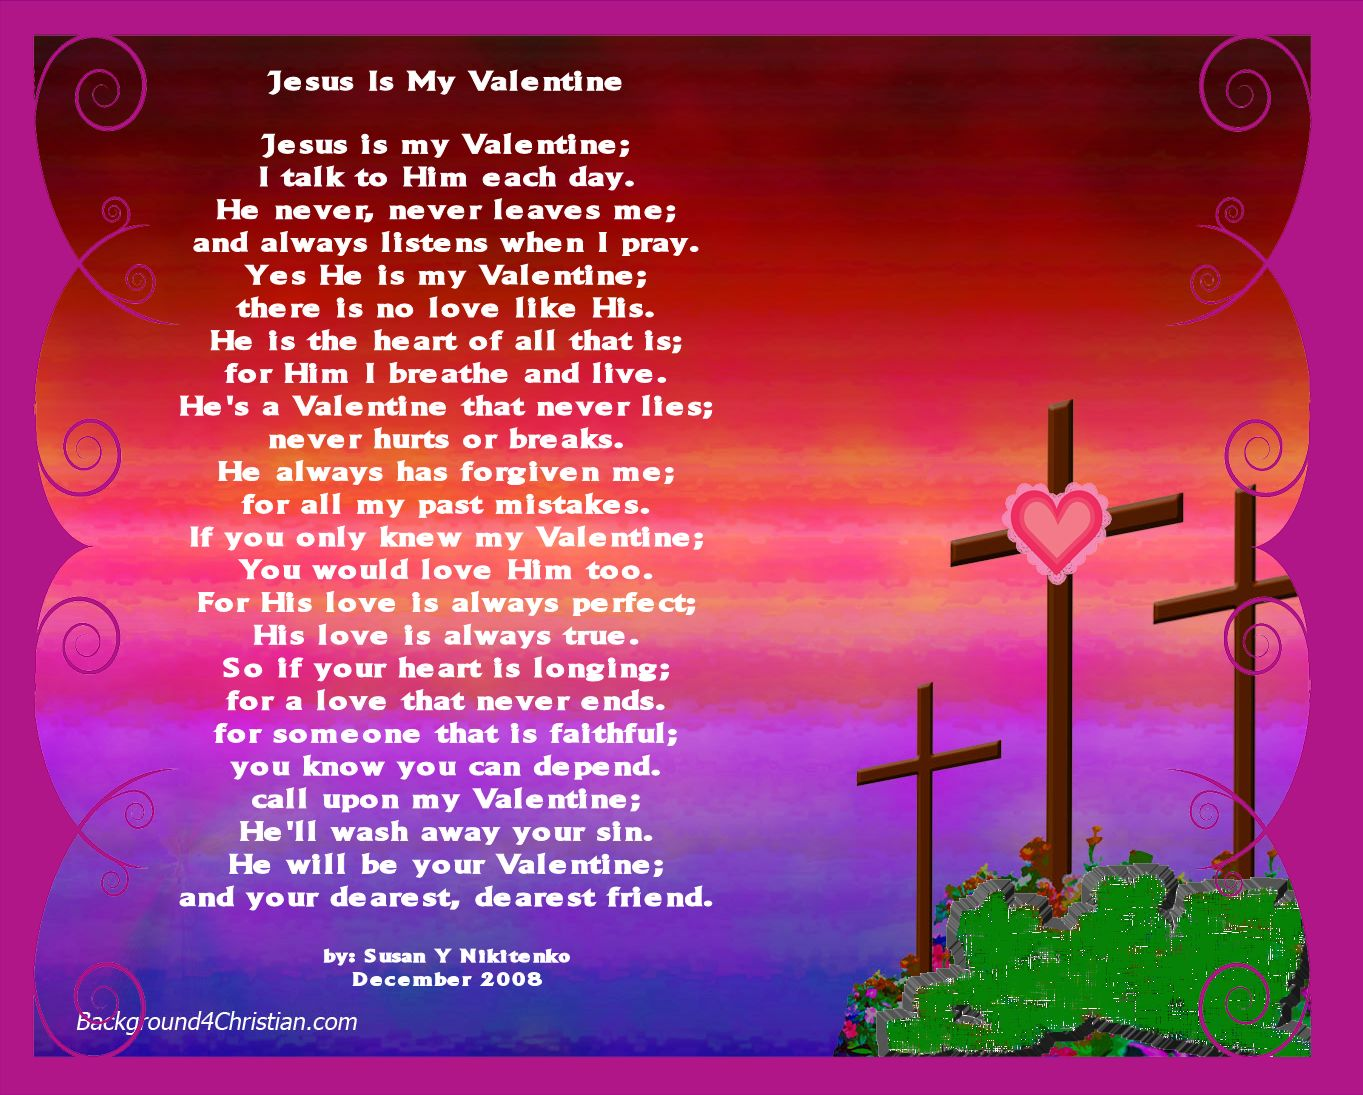 Christian Images In My Treasure Box Jesus Is My Valentine Poster